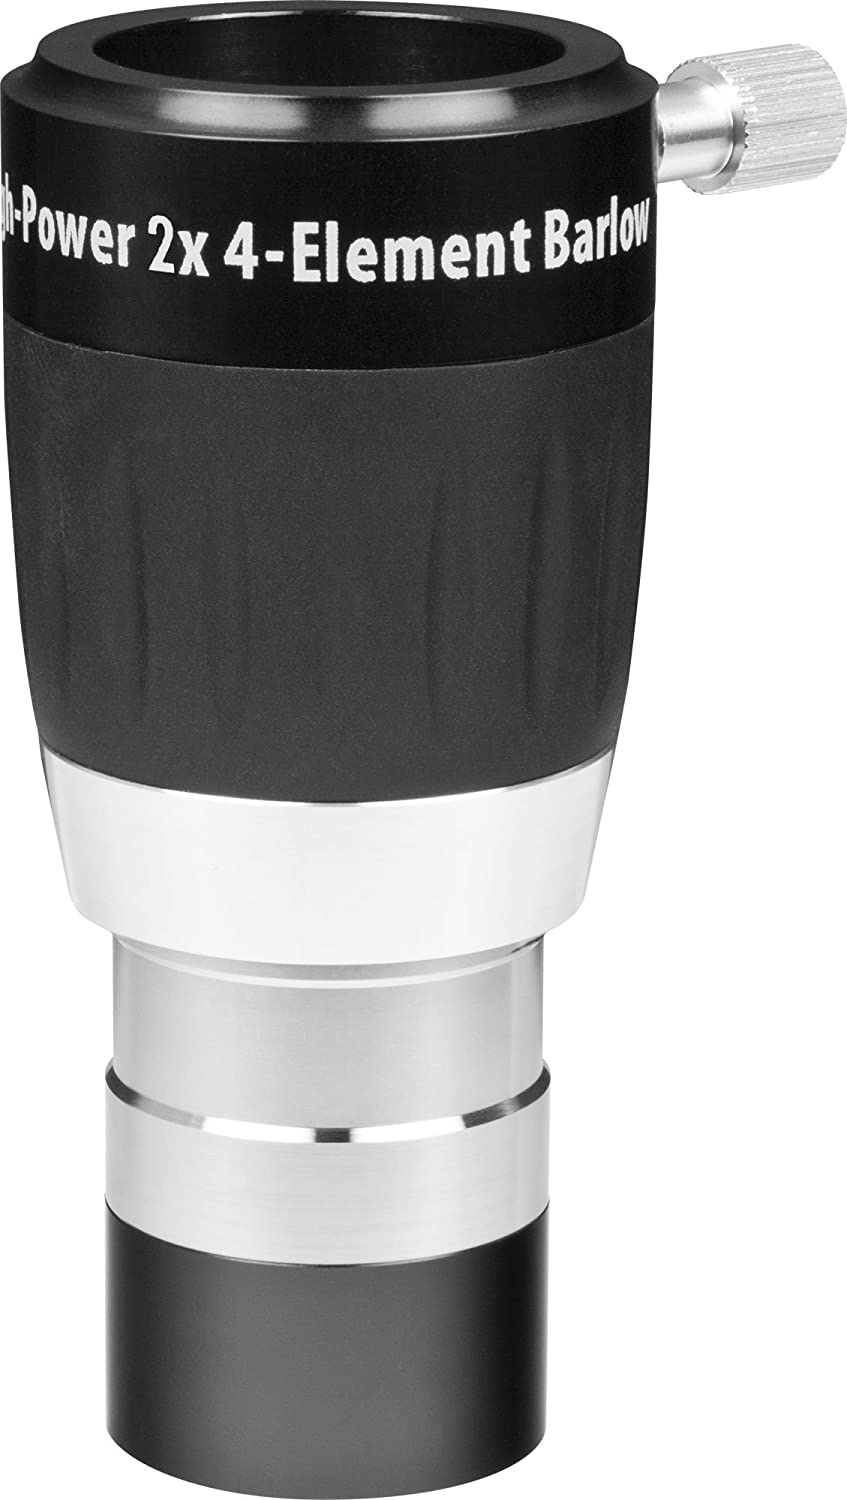 High-Power 1.25 Inch 2x 4-Element Barlow Lens Orion 08470